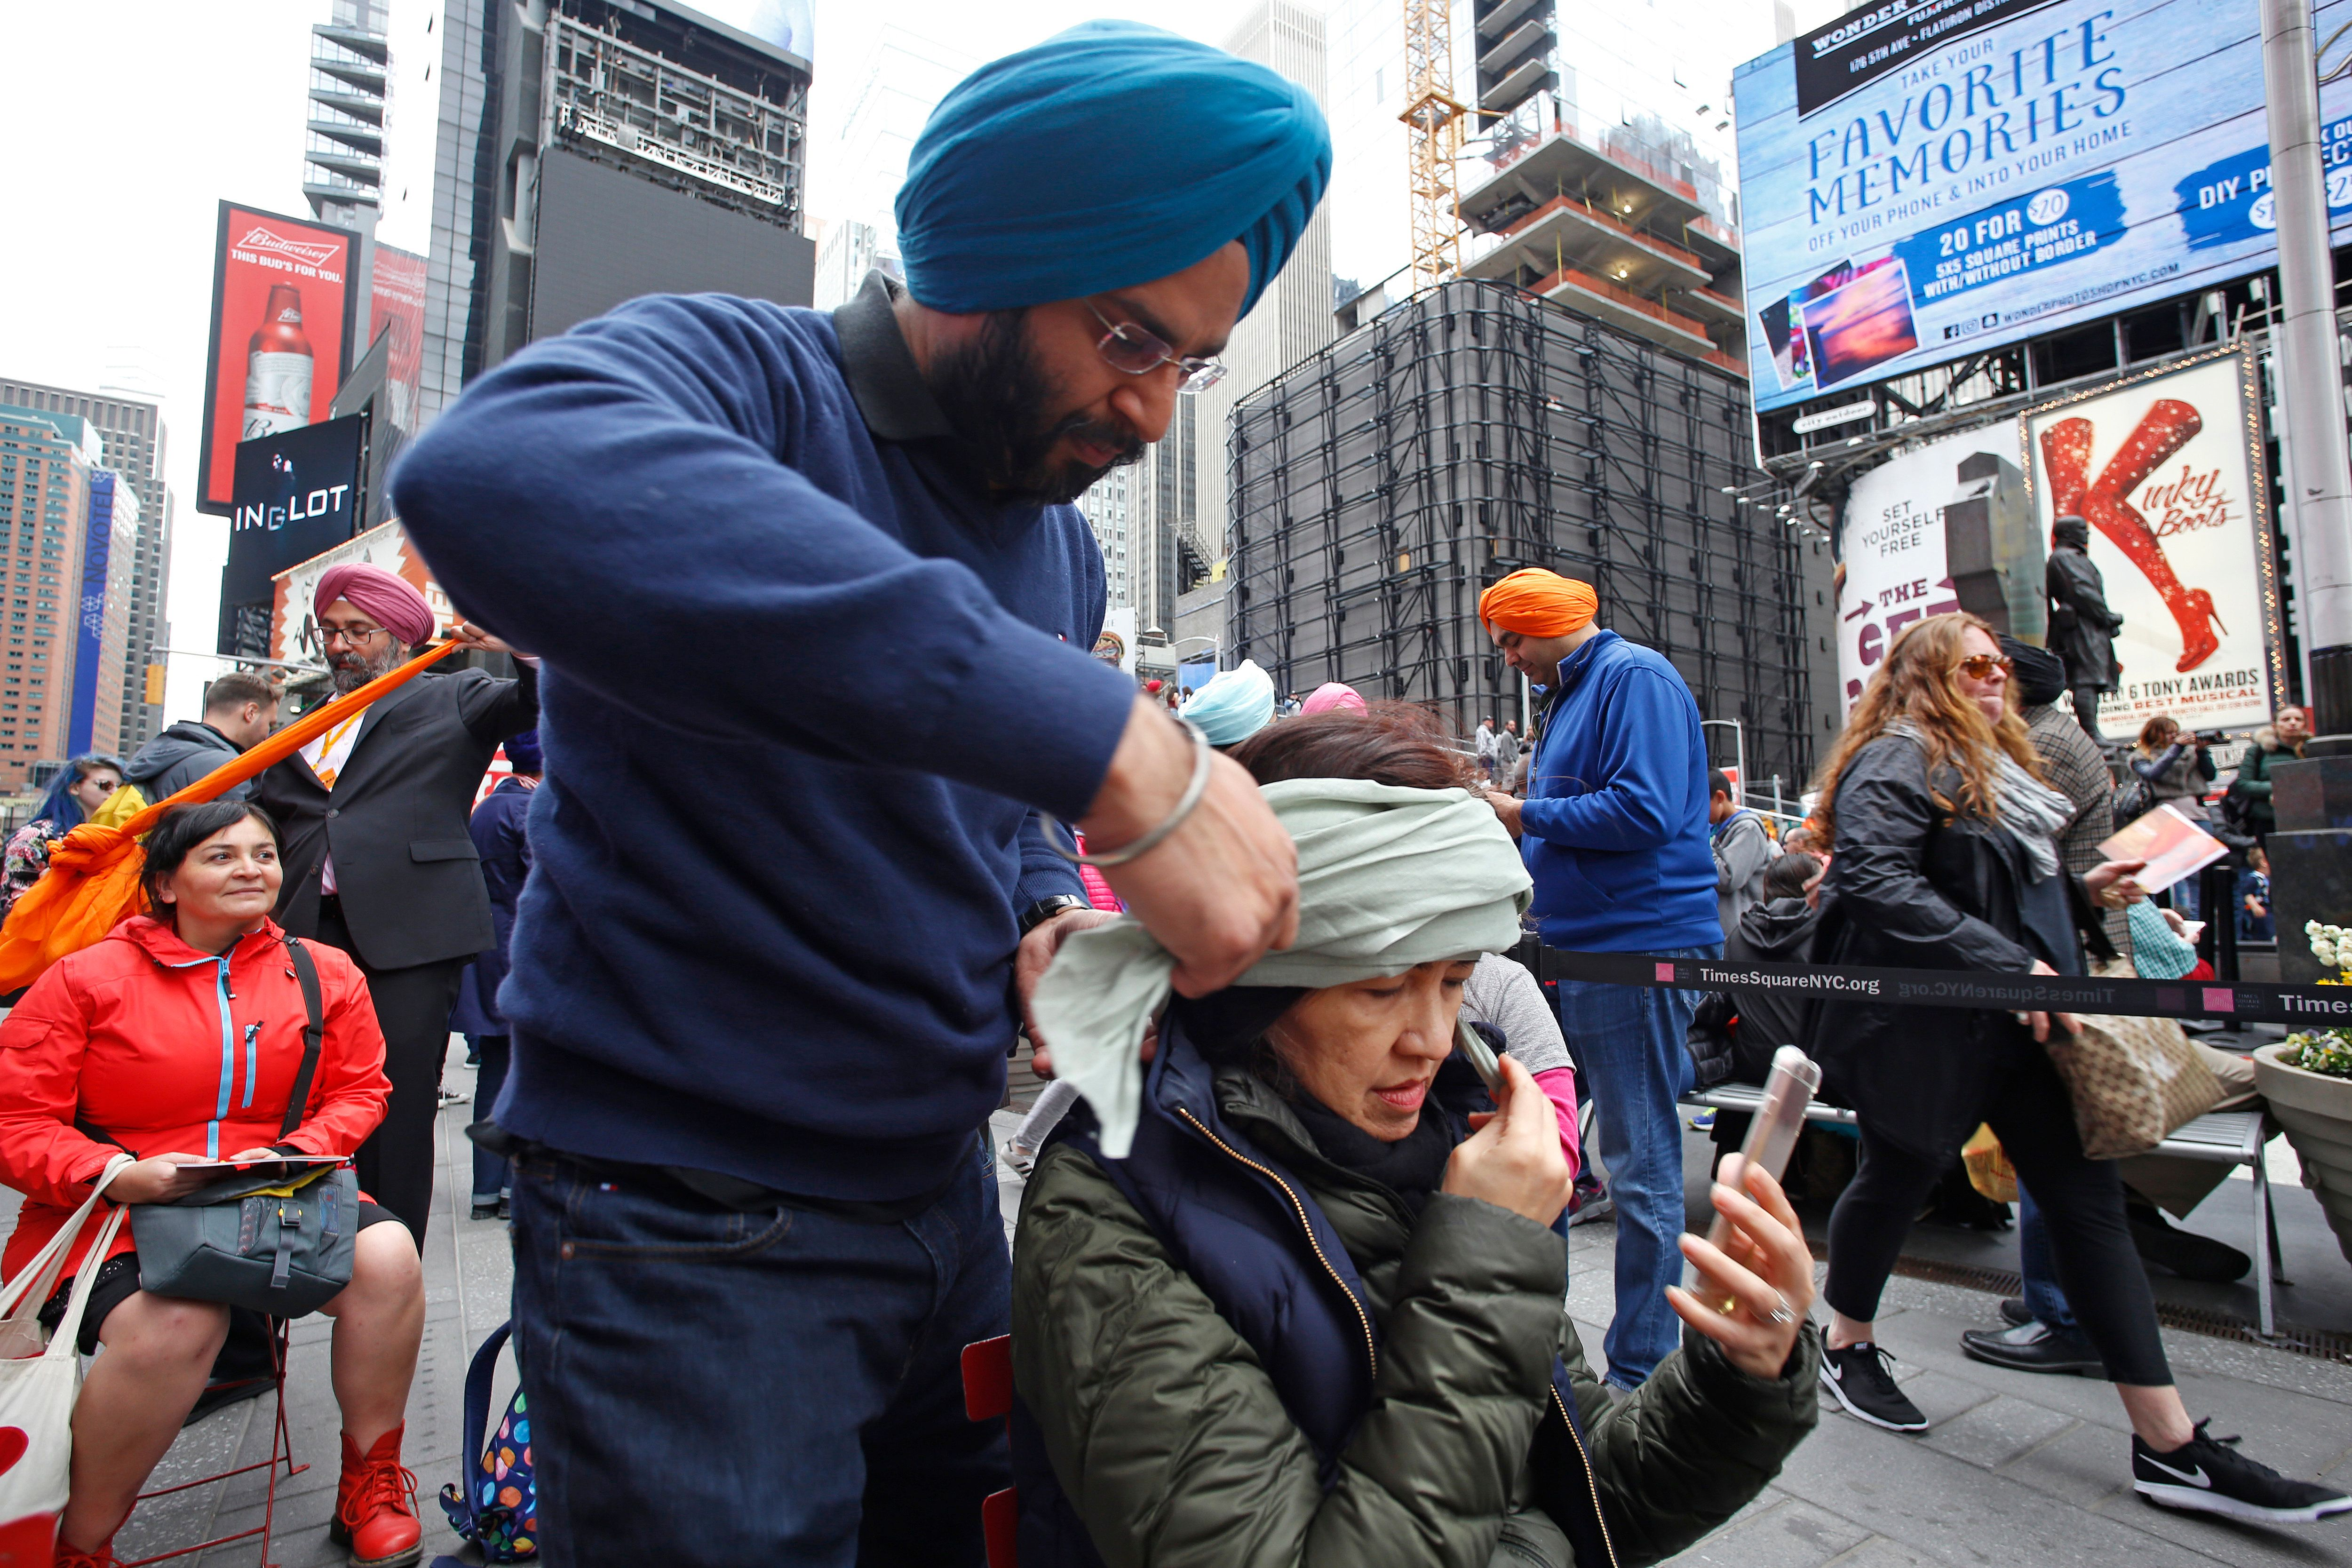 Sikhs of New York organizeda Turban Day in Times Square. Volunteers were on hand to help tie traditional Sikh turbans f